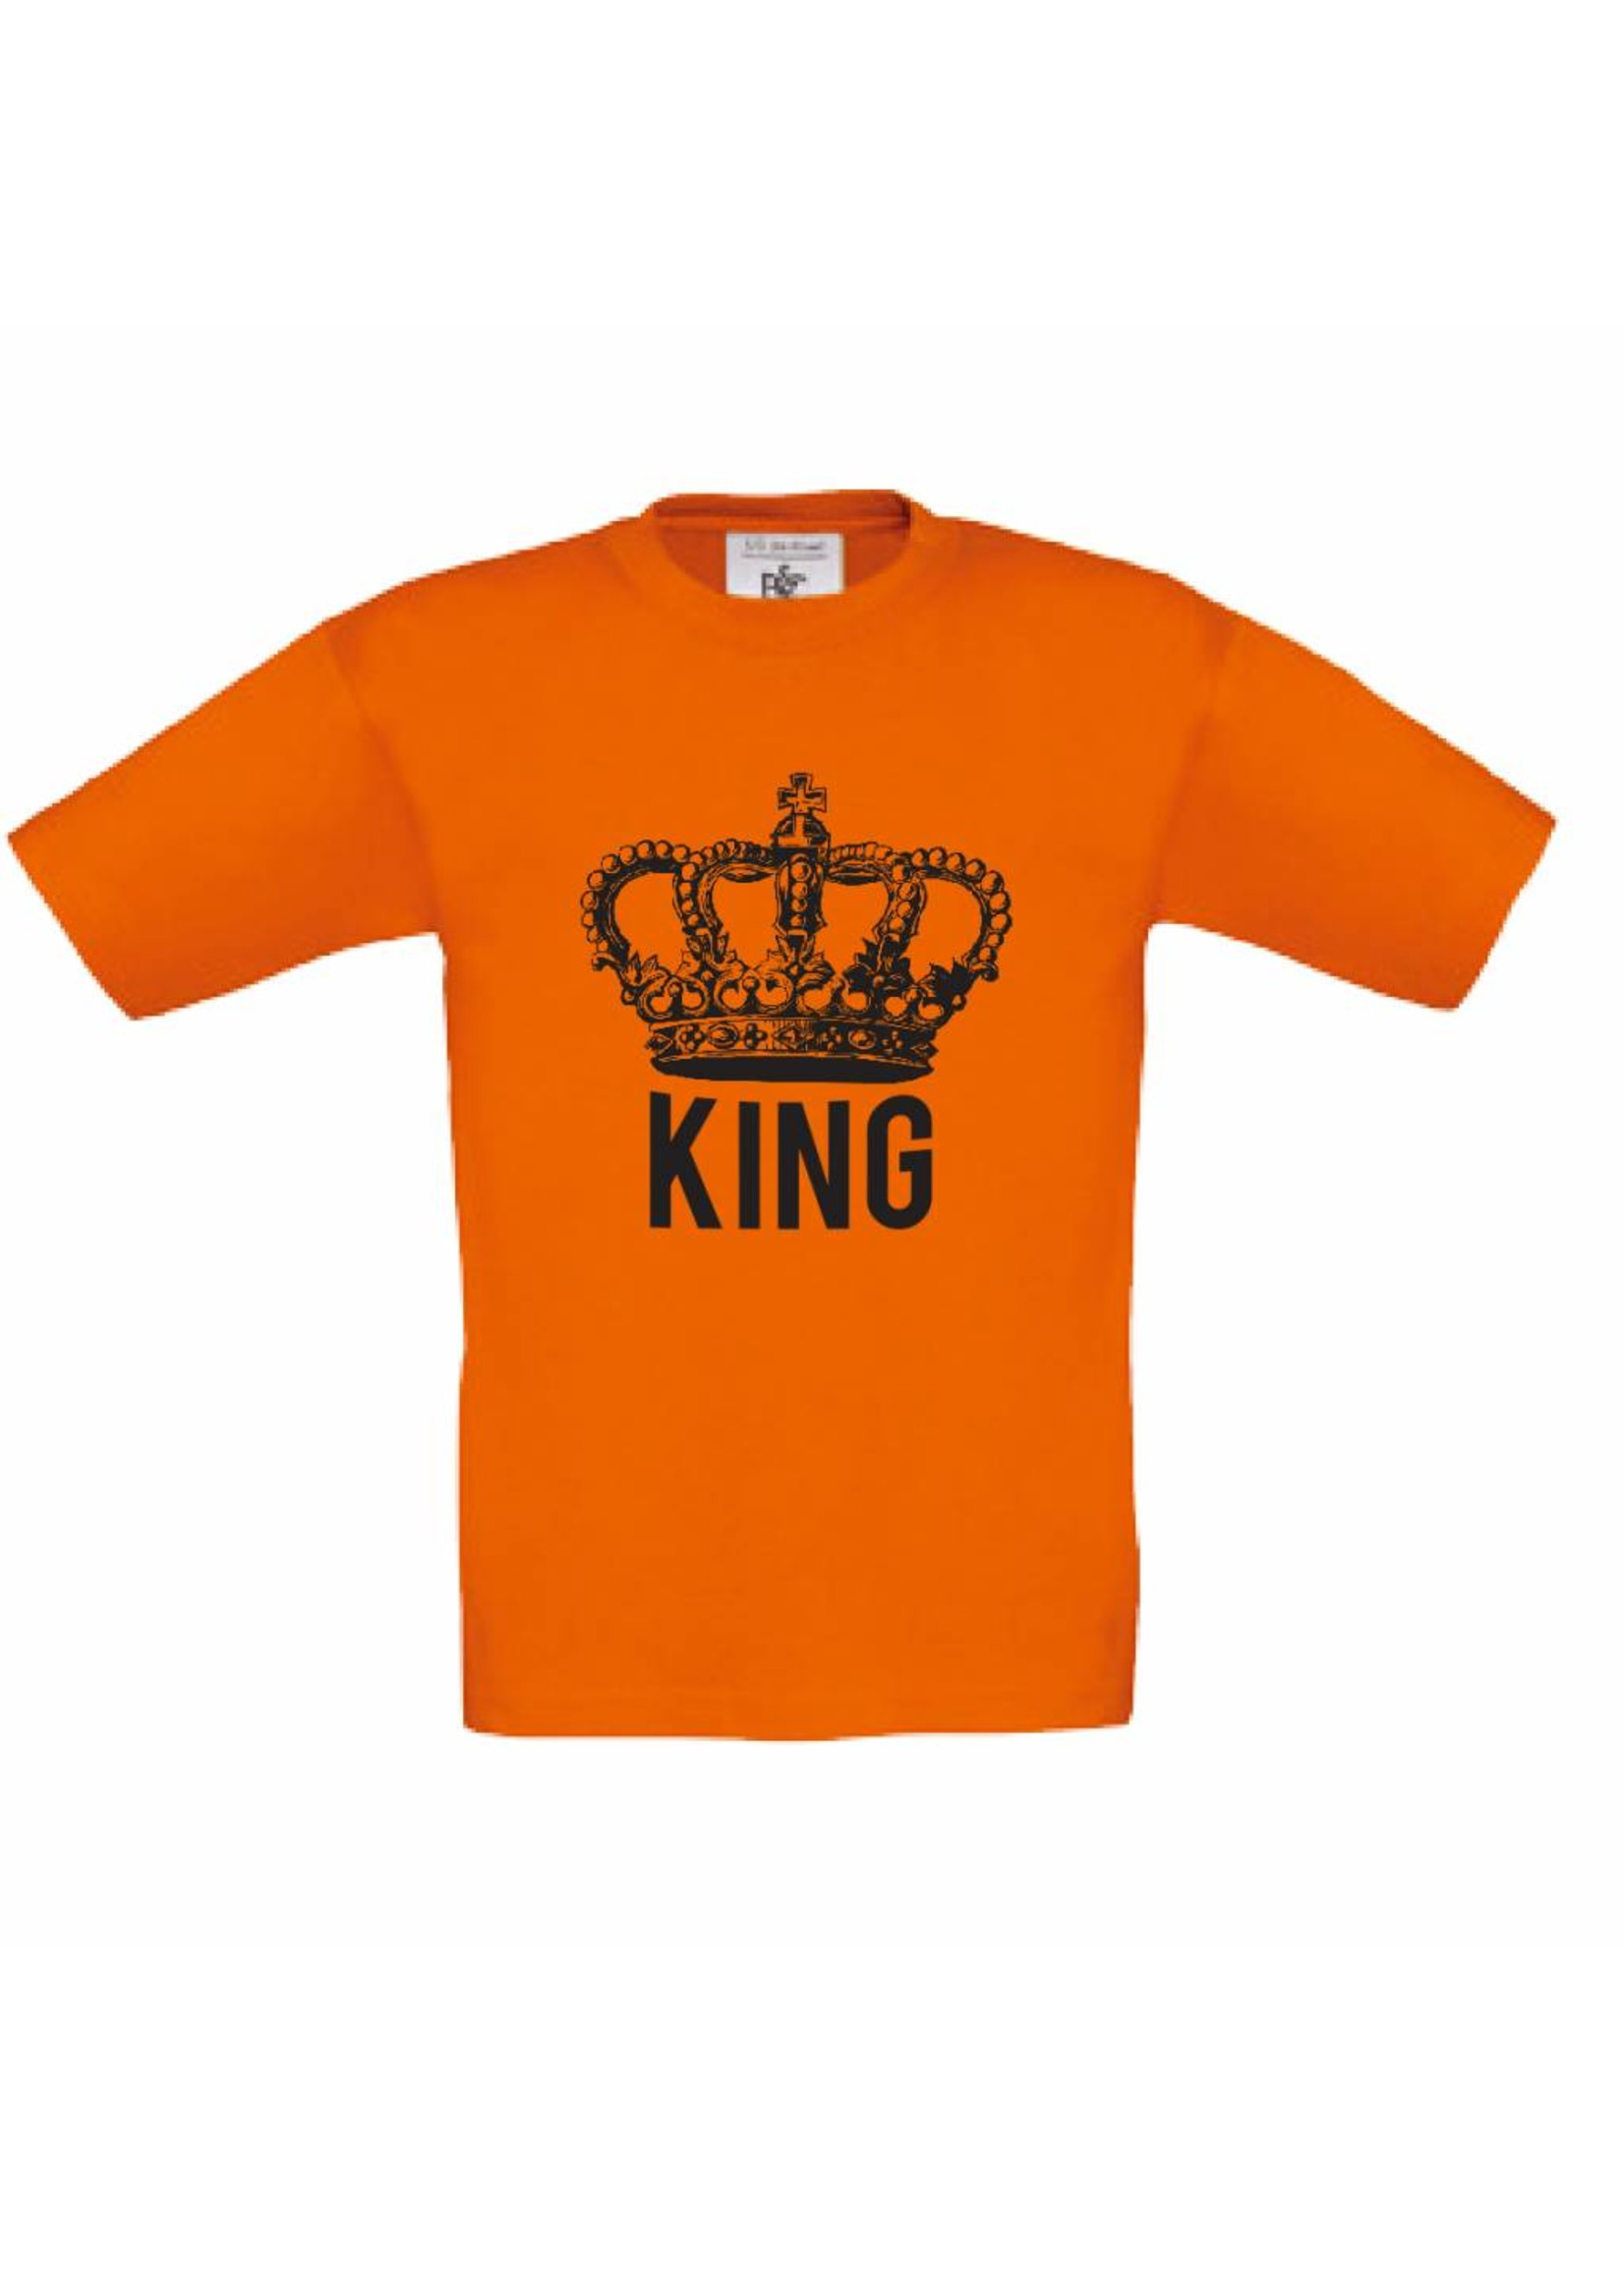 Koningsdag t-shirt - king